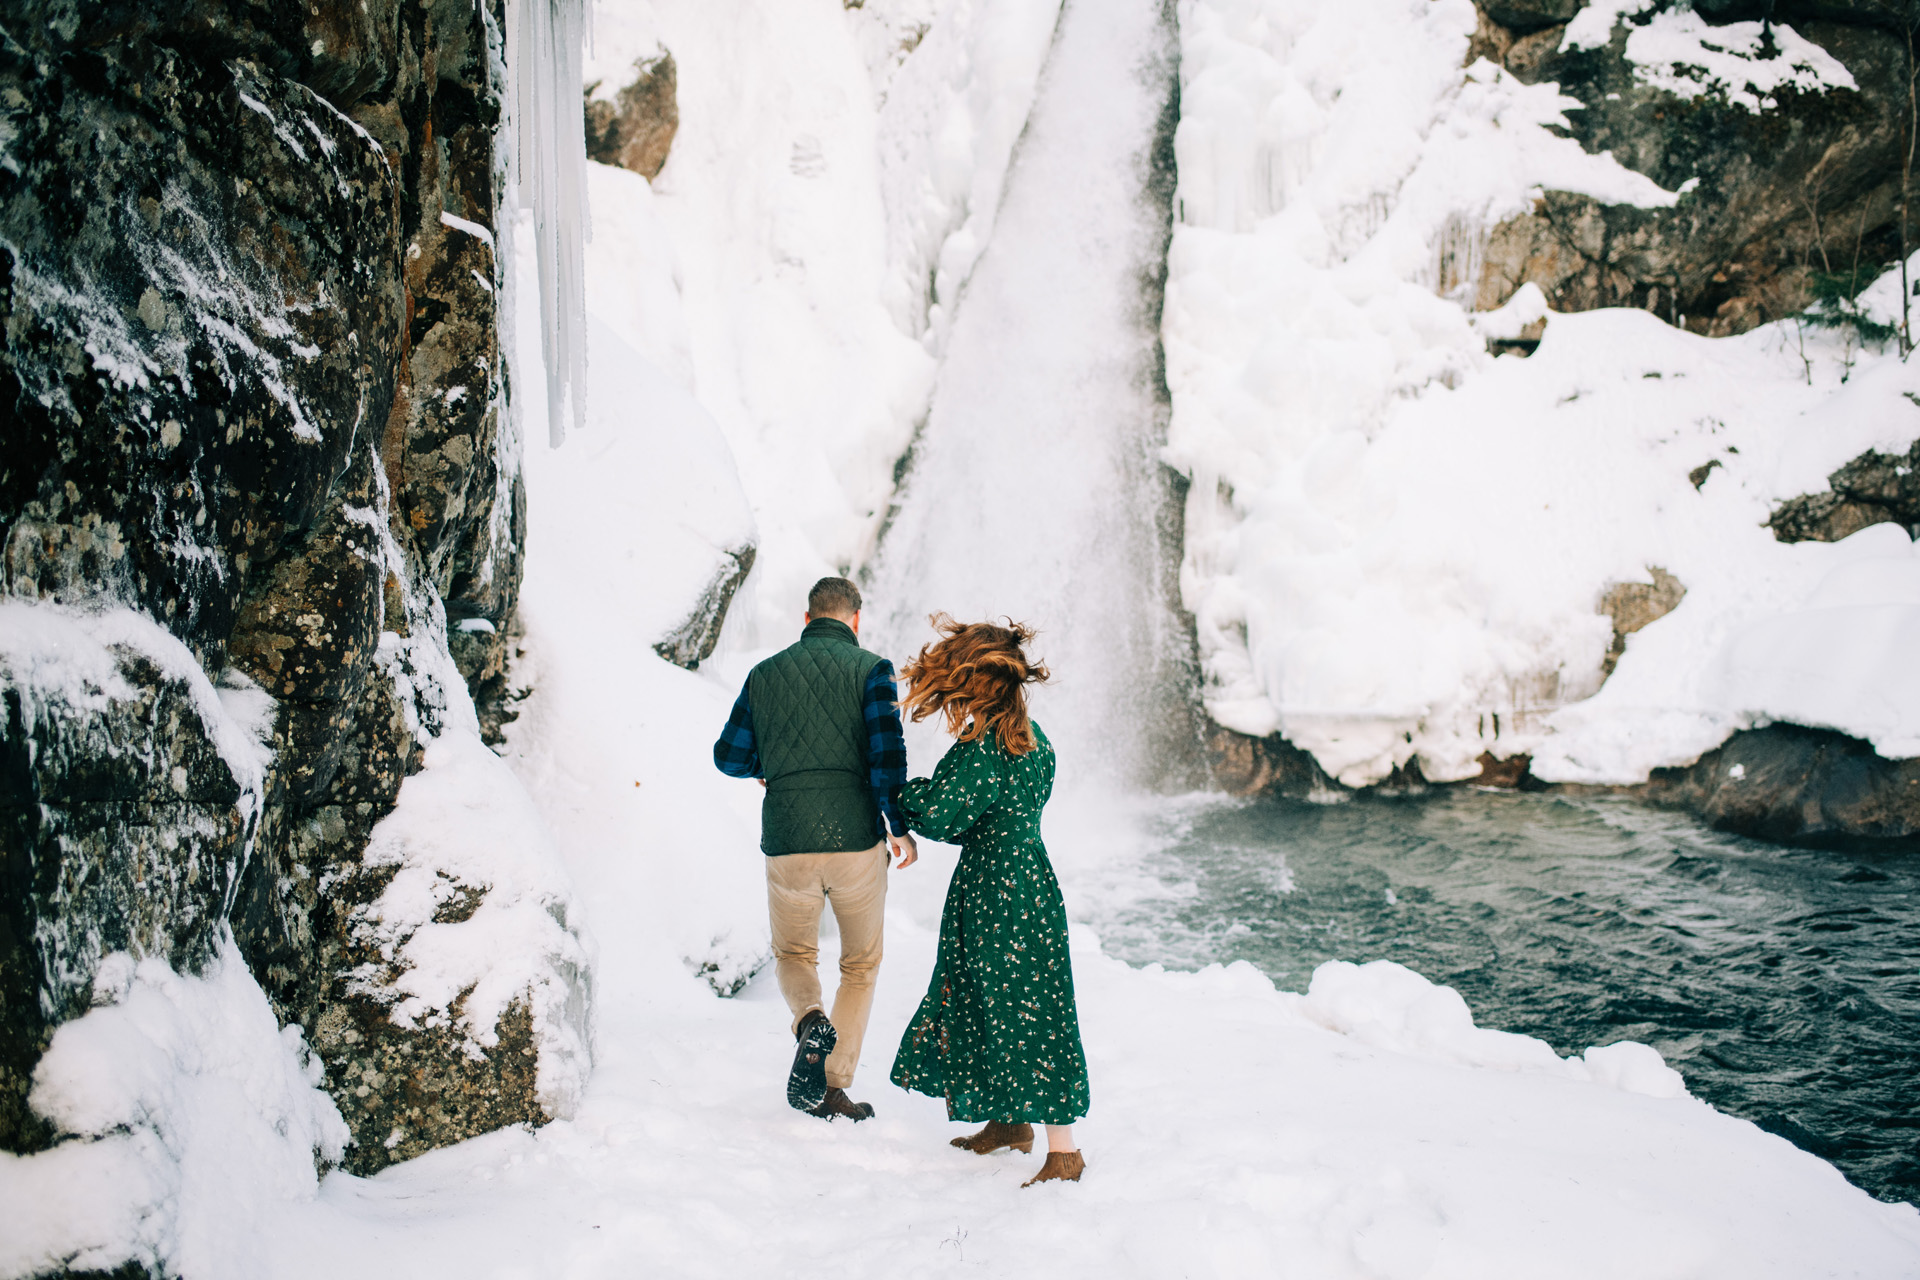 winter-white-mountains-new-hampshire-engagement-04